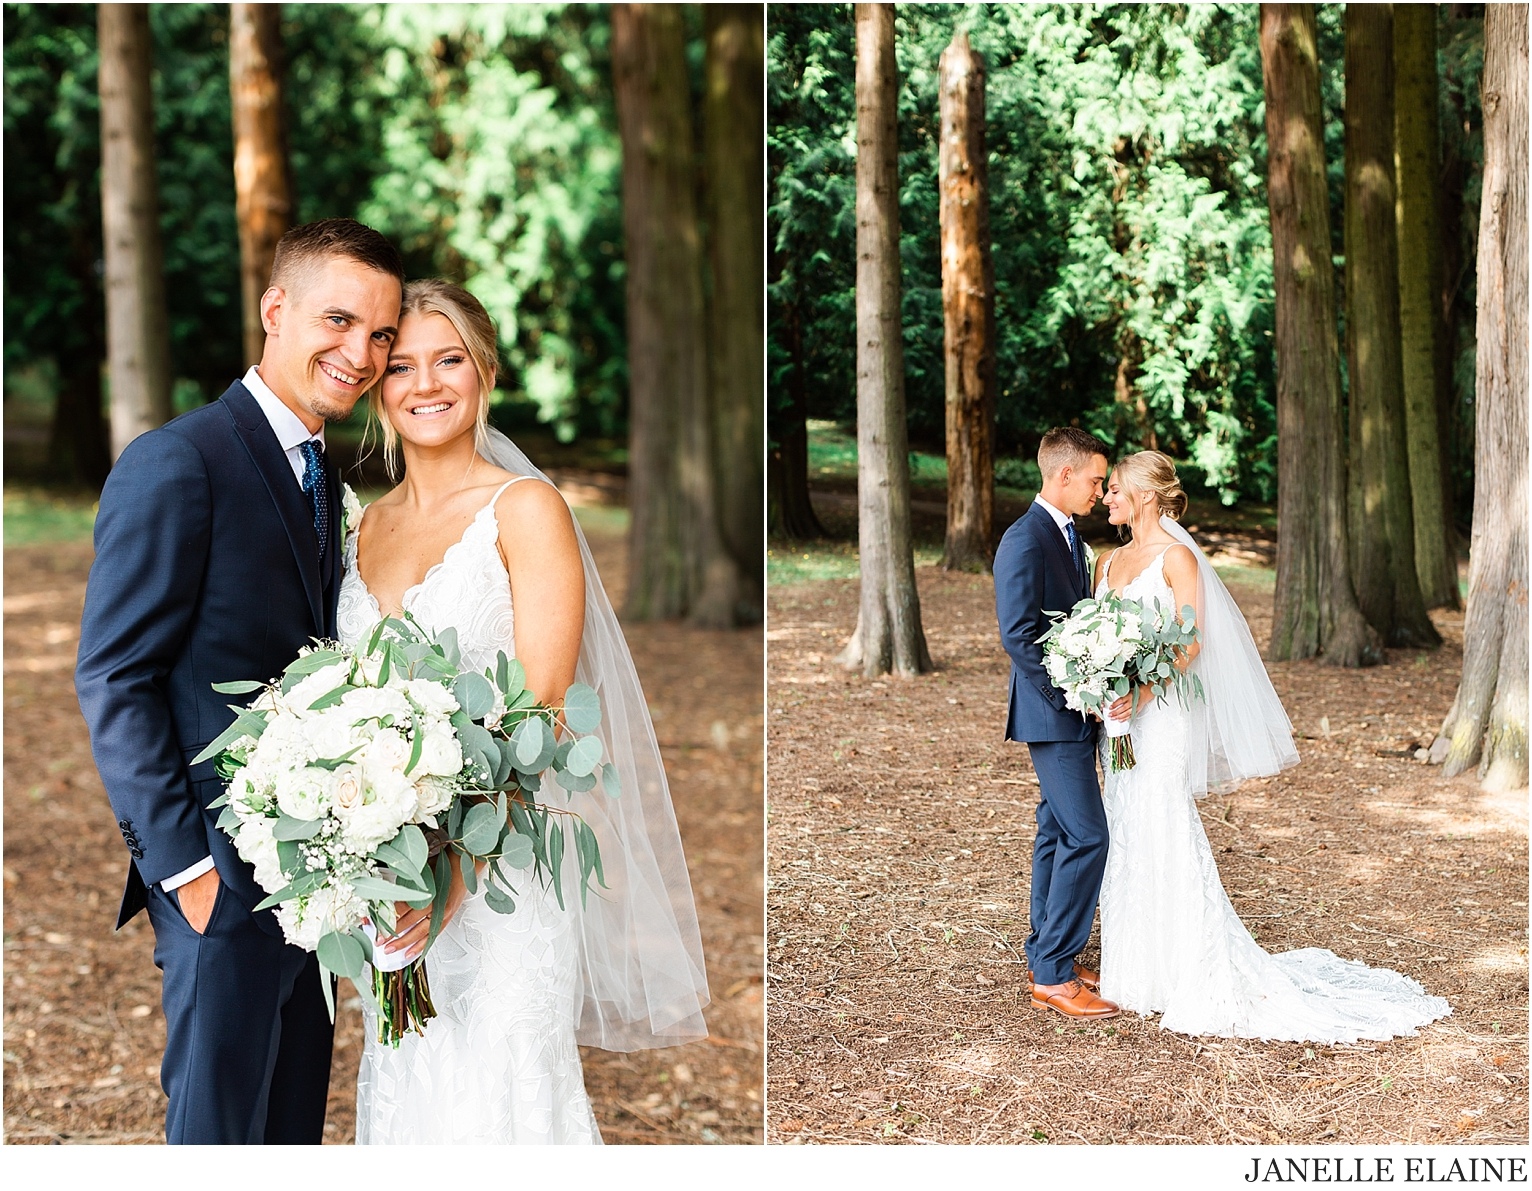 Tricia and Nathan Goddard Wedding-First Look and Portraits-Janelle Elaine Photography-30.jpg